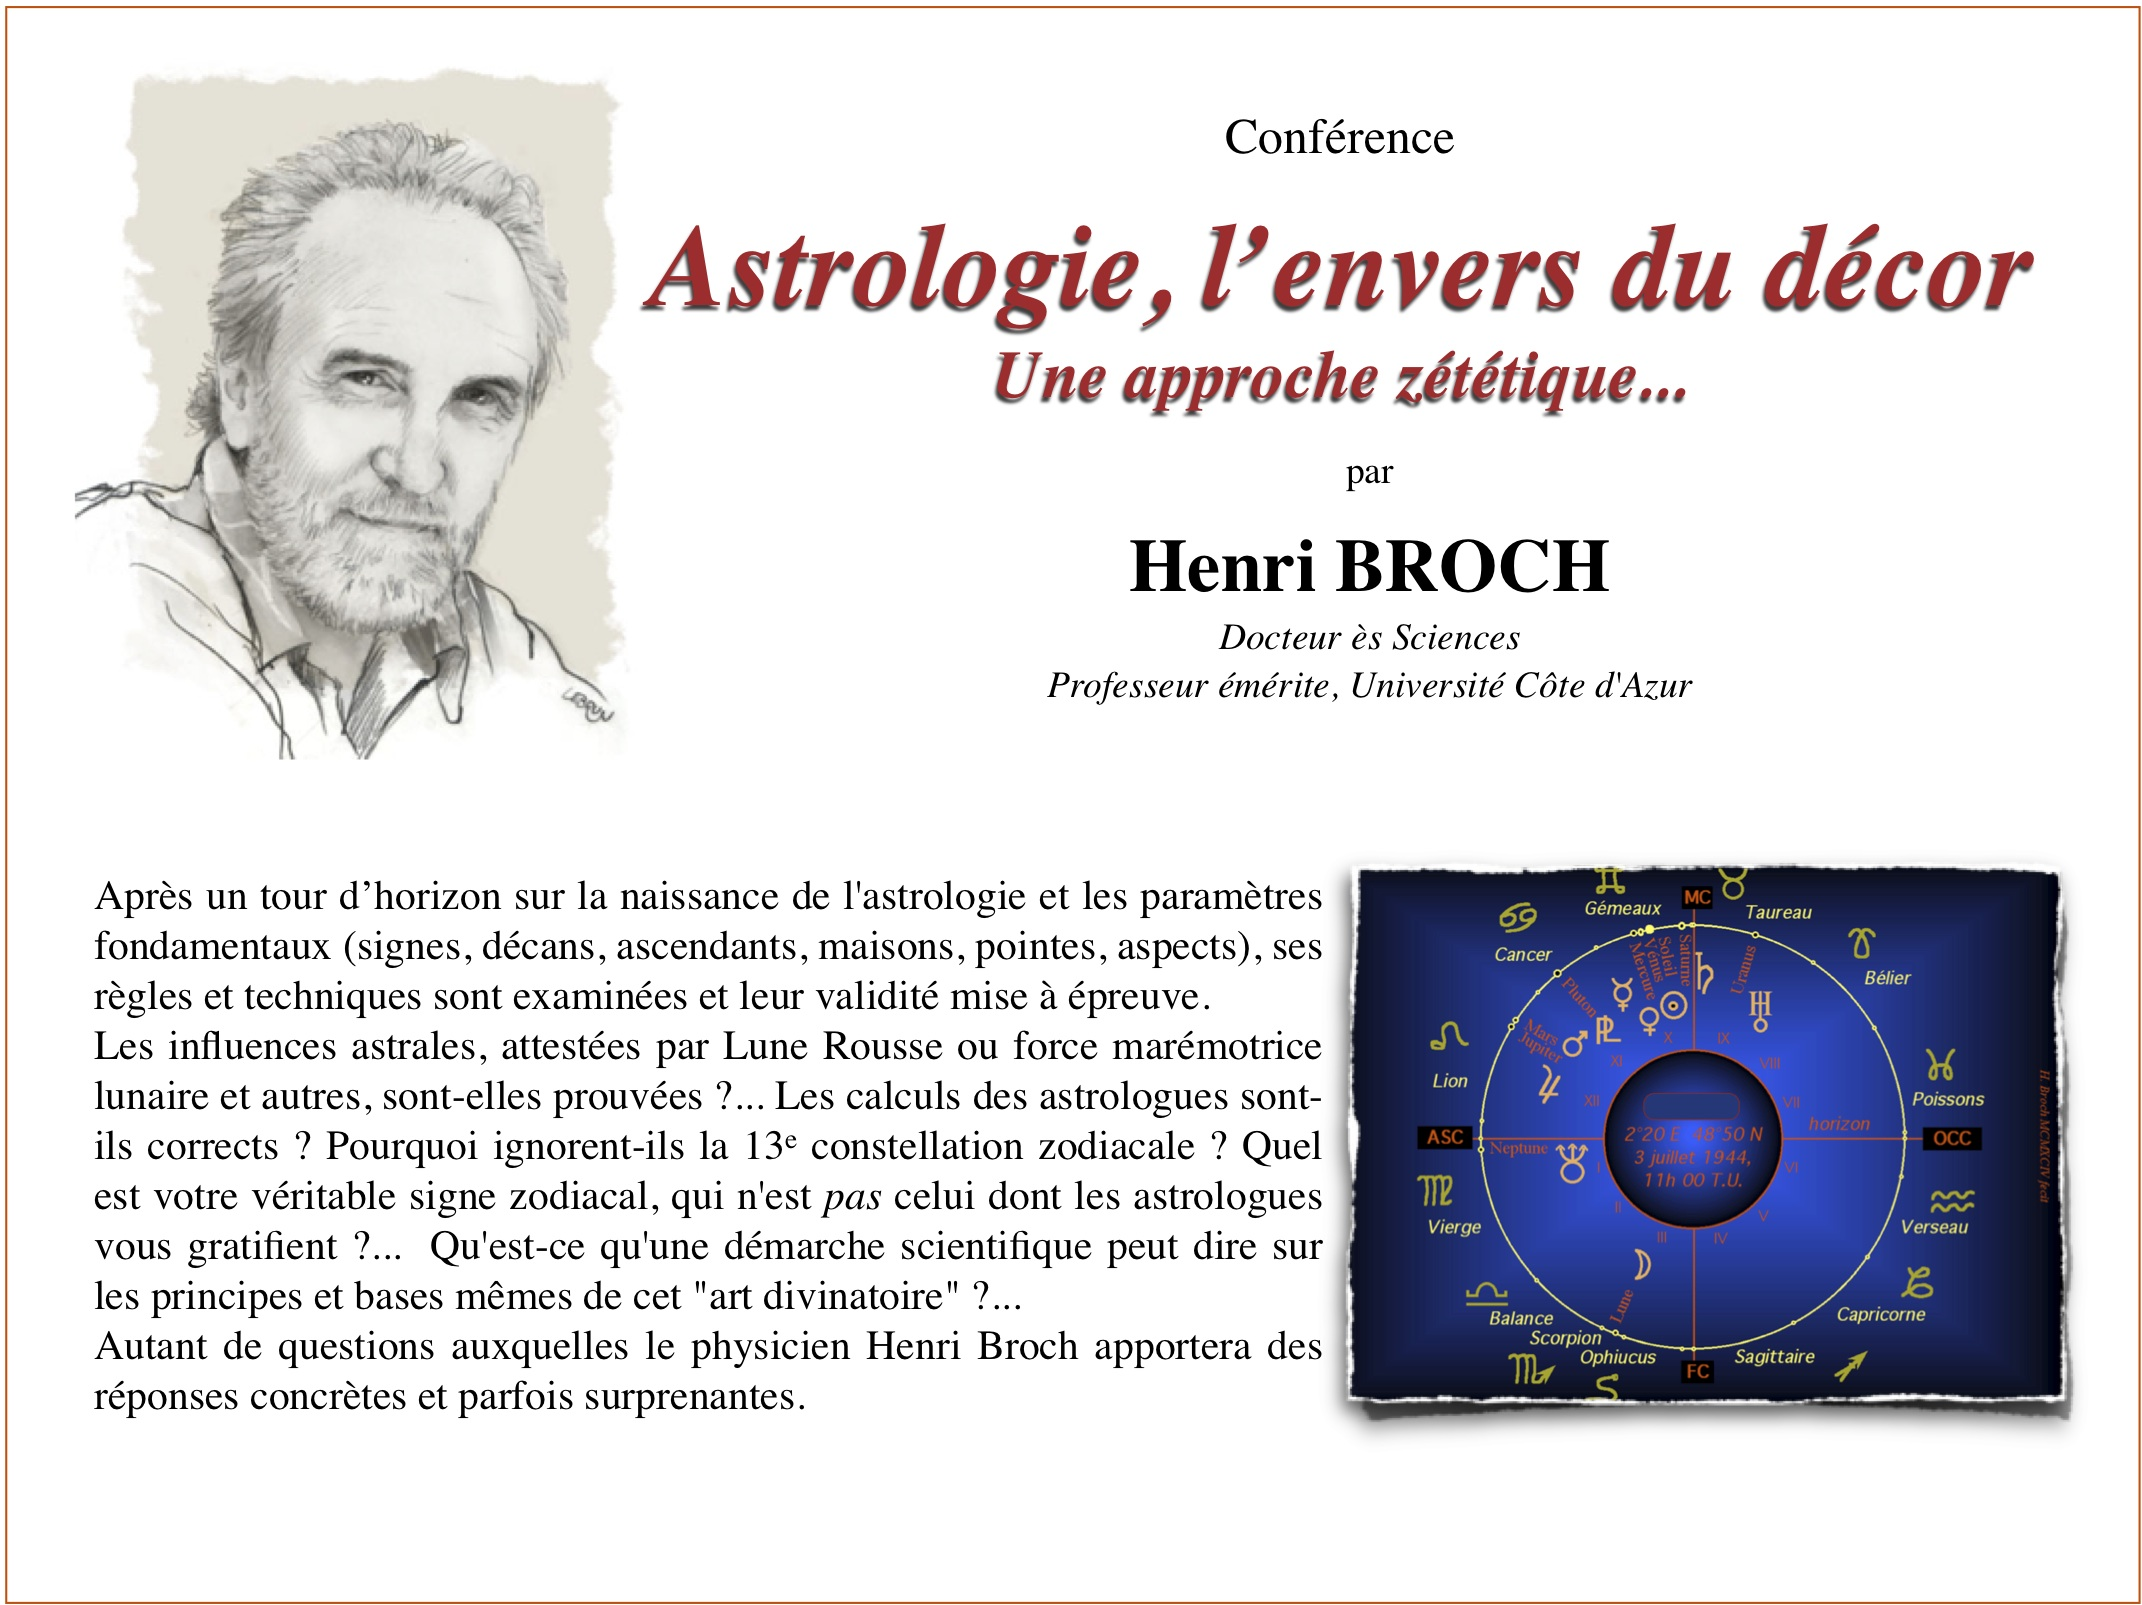 H.Broch-Astrologie-envers-du-decor